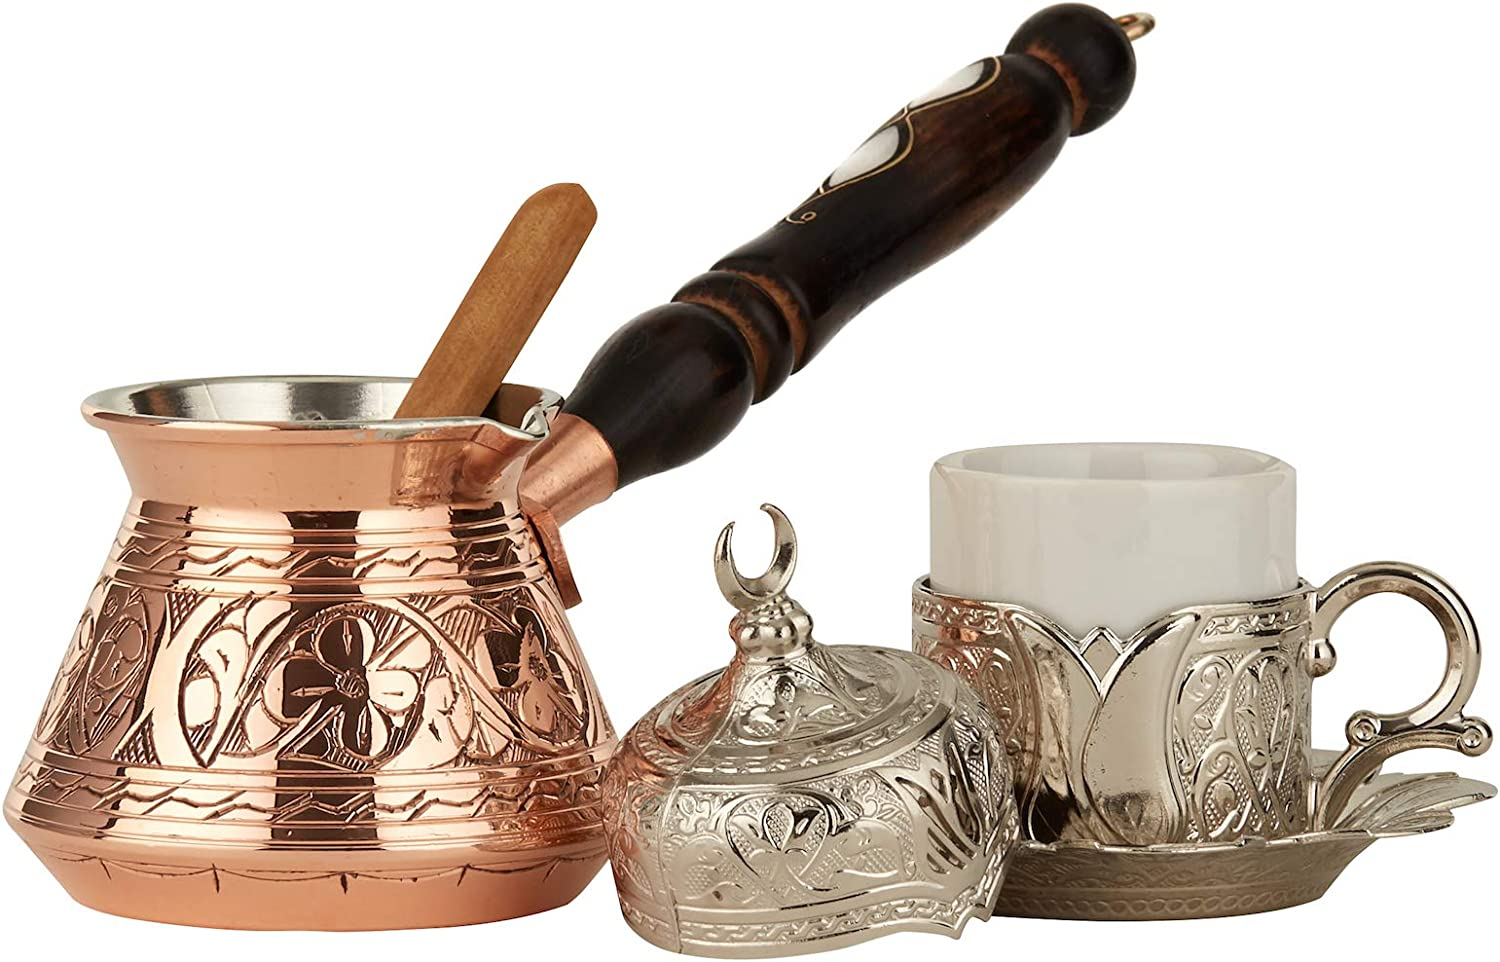 DEMMEX 6 Pcs Turkish Greek Coffee Set for 1 with Engraved Copper Pot and Heavy Duty Cup Saucer Lid and Spoon (Copper & Silver)